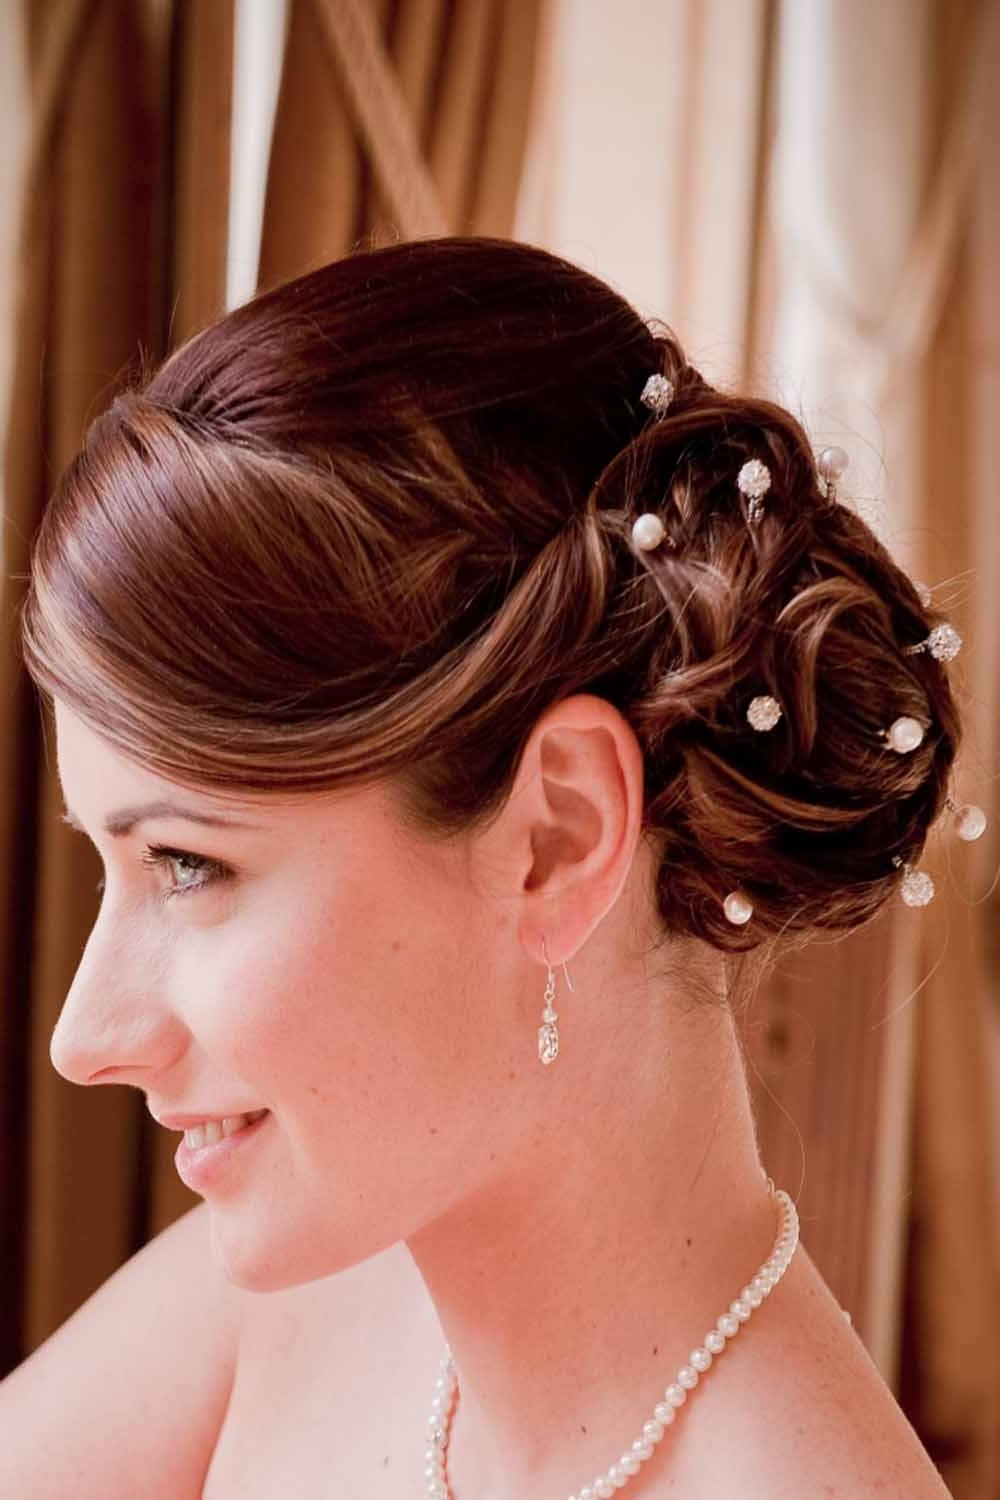 Pictures Of Wedding Hairstyles For Long Hair 2011 With Most Recent Modern Wedding Hairstyles For Medium Length Hair (View 8 of 15)